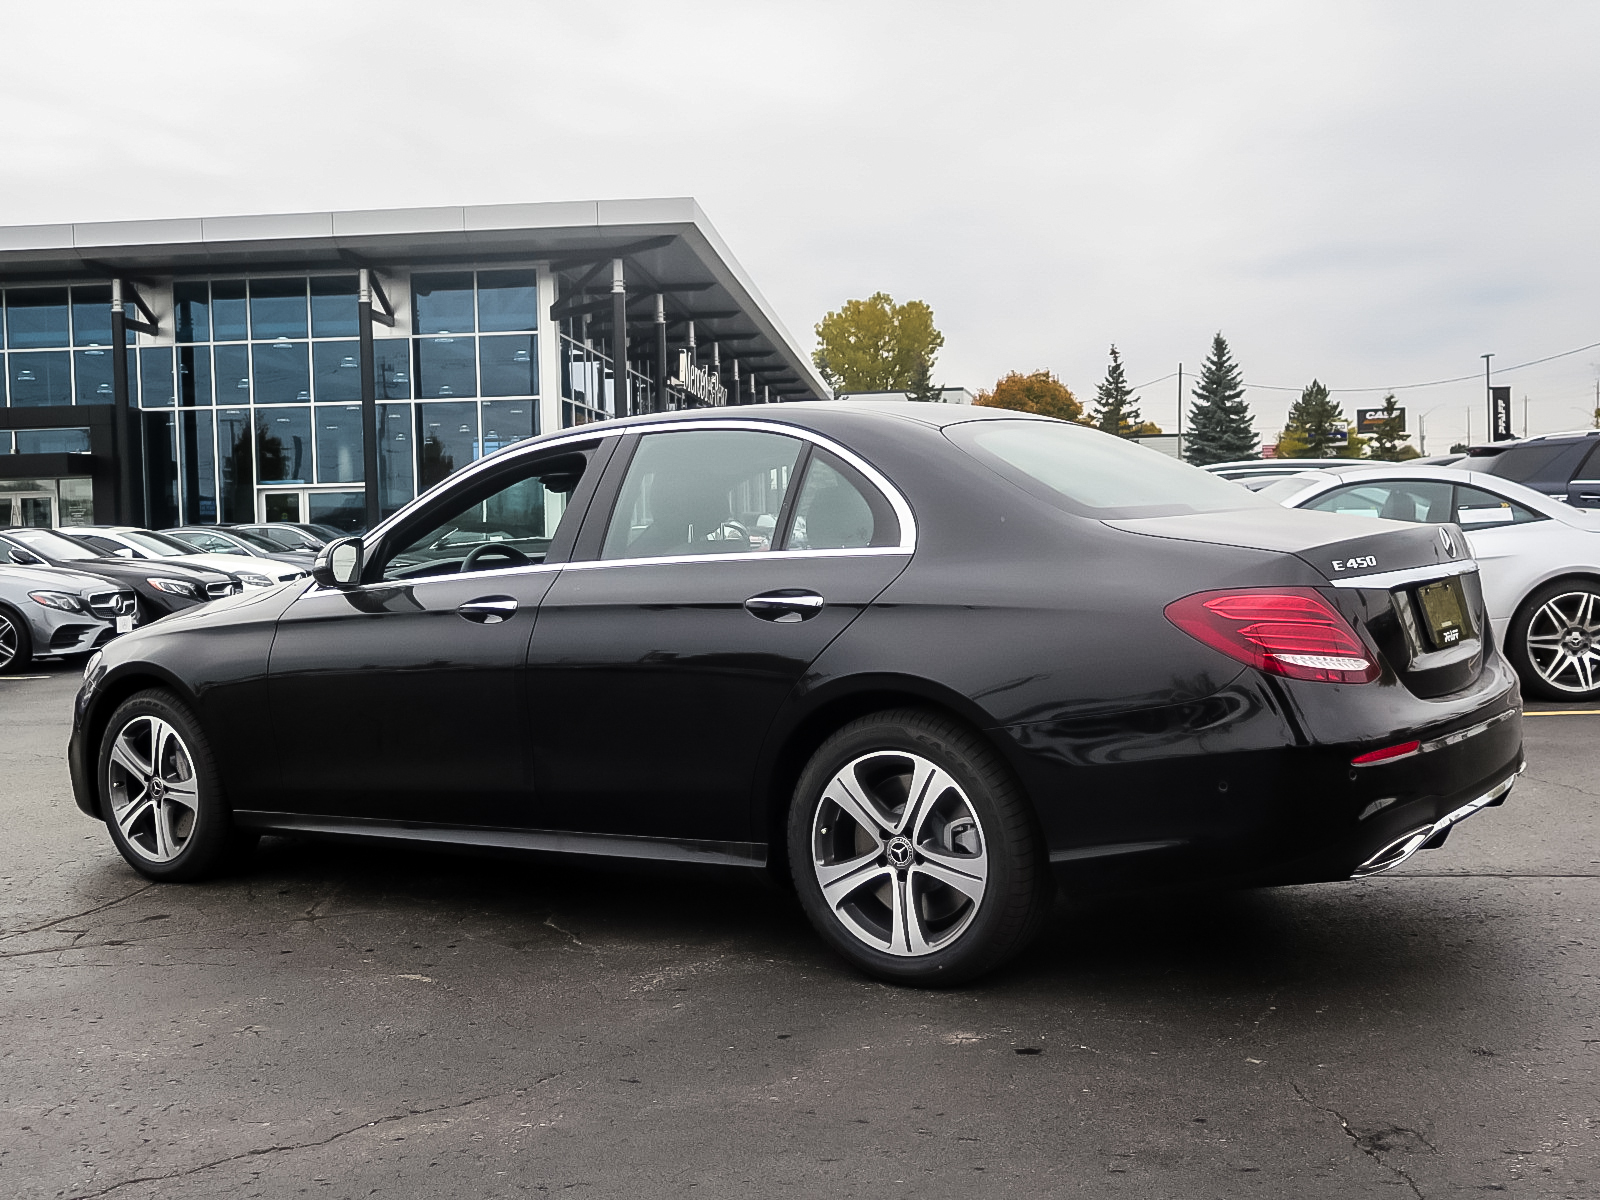 New 2020 Mercedes-Benz S560 4MATIC Sedan (LWB)